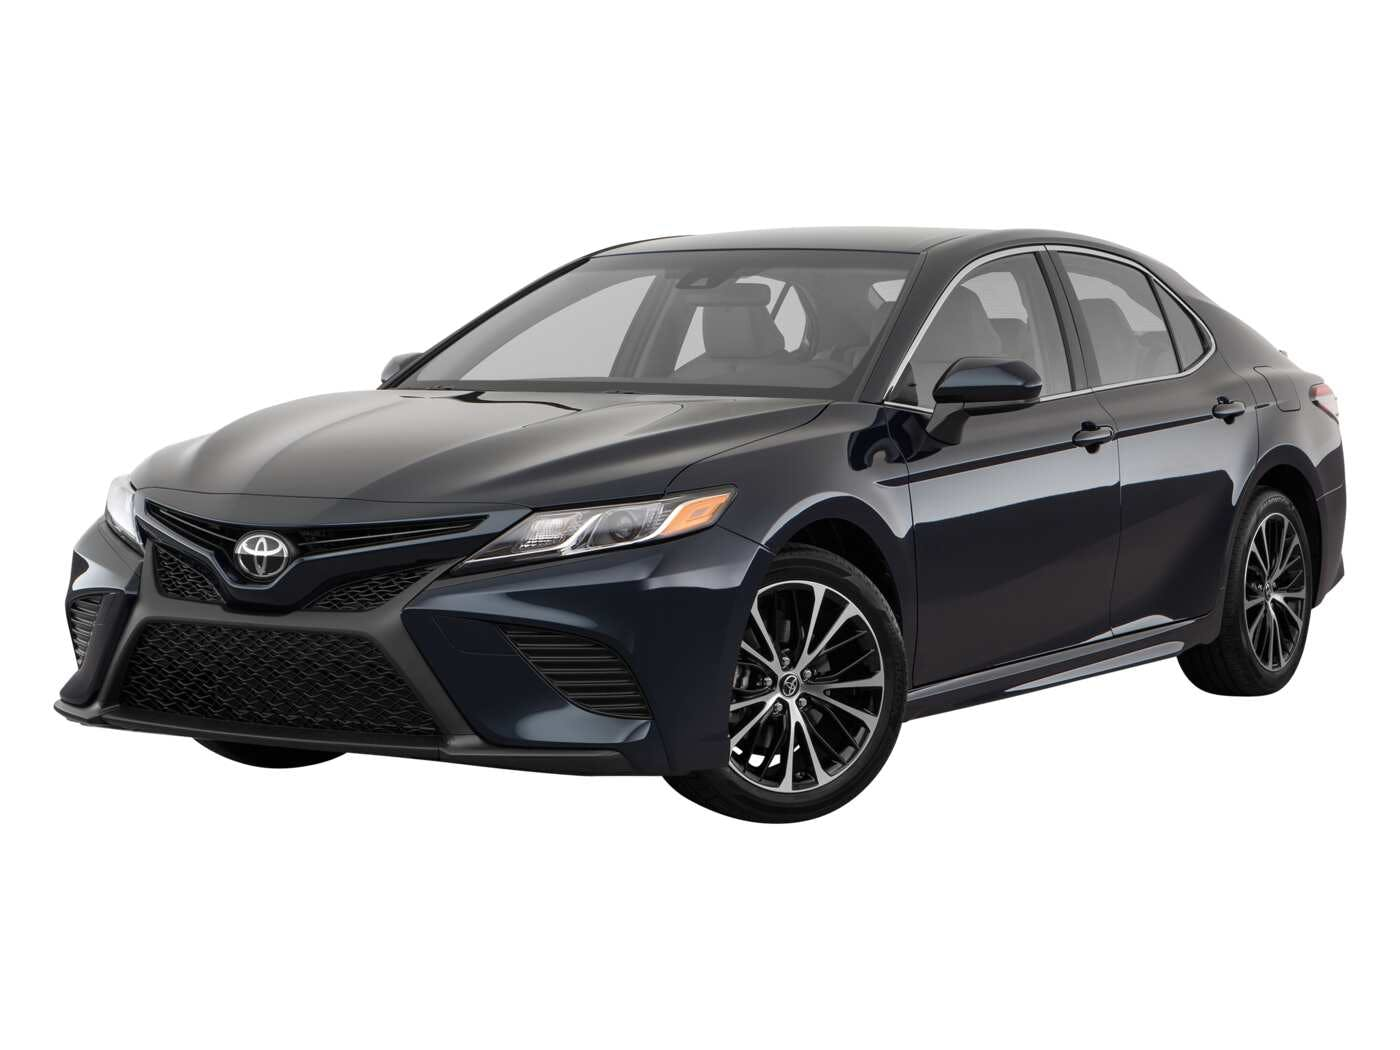 all new camry price varian warna grand avanza 2019 toyota prices reviews incentives truecar exterior front angle view